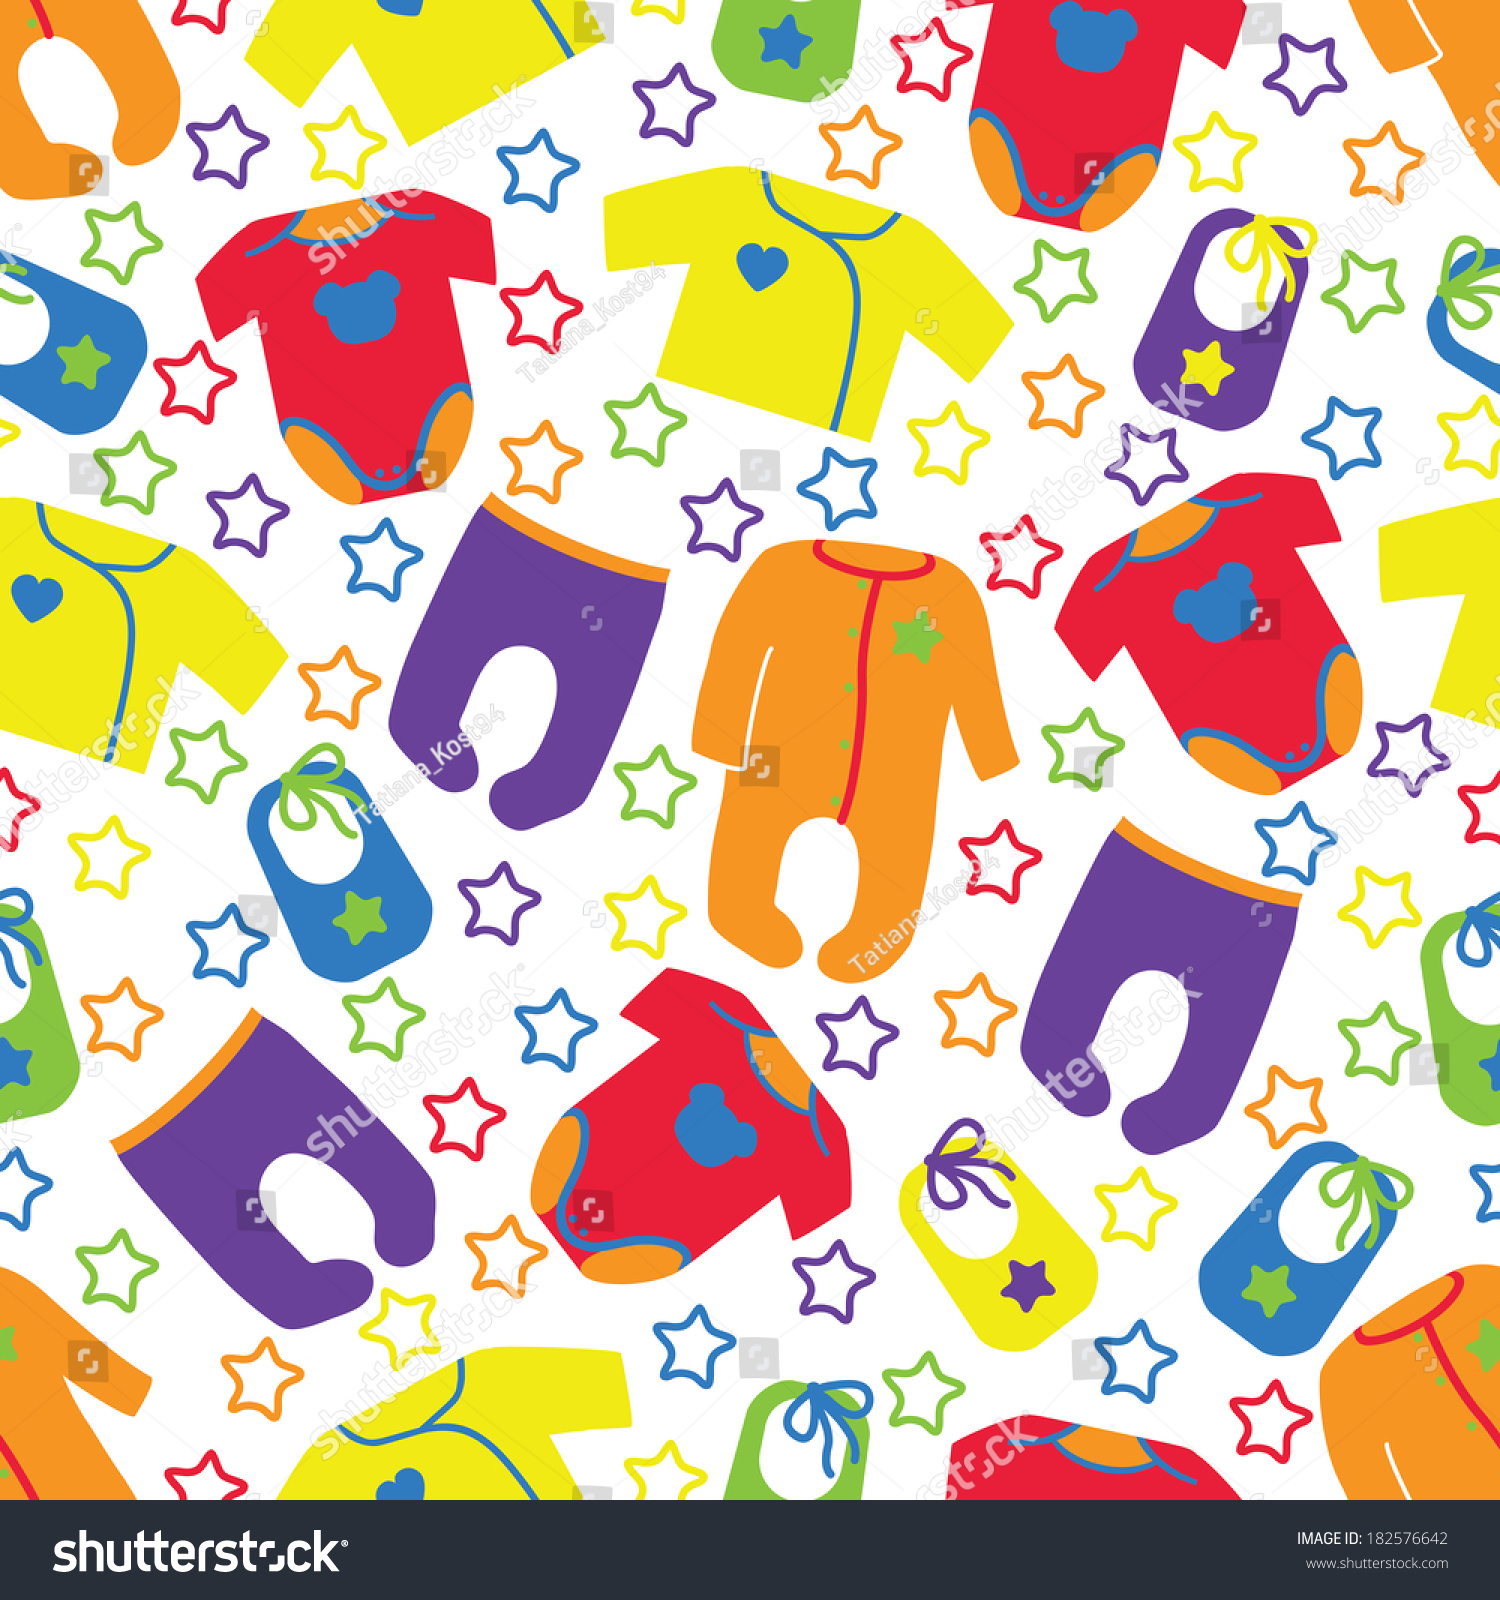 Colorful Clothes For Newborn Children Seamless Pattern Or Ornament With StarsUnisex Models Baby